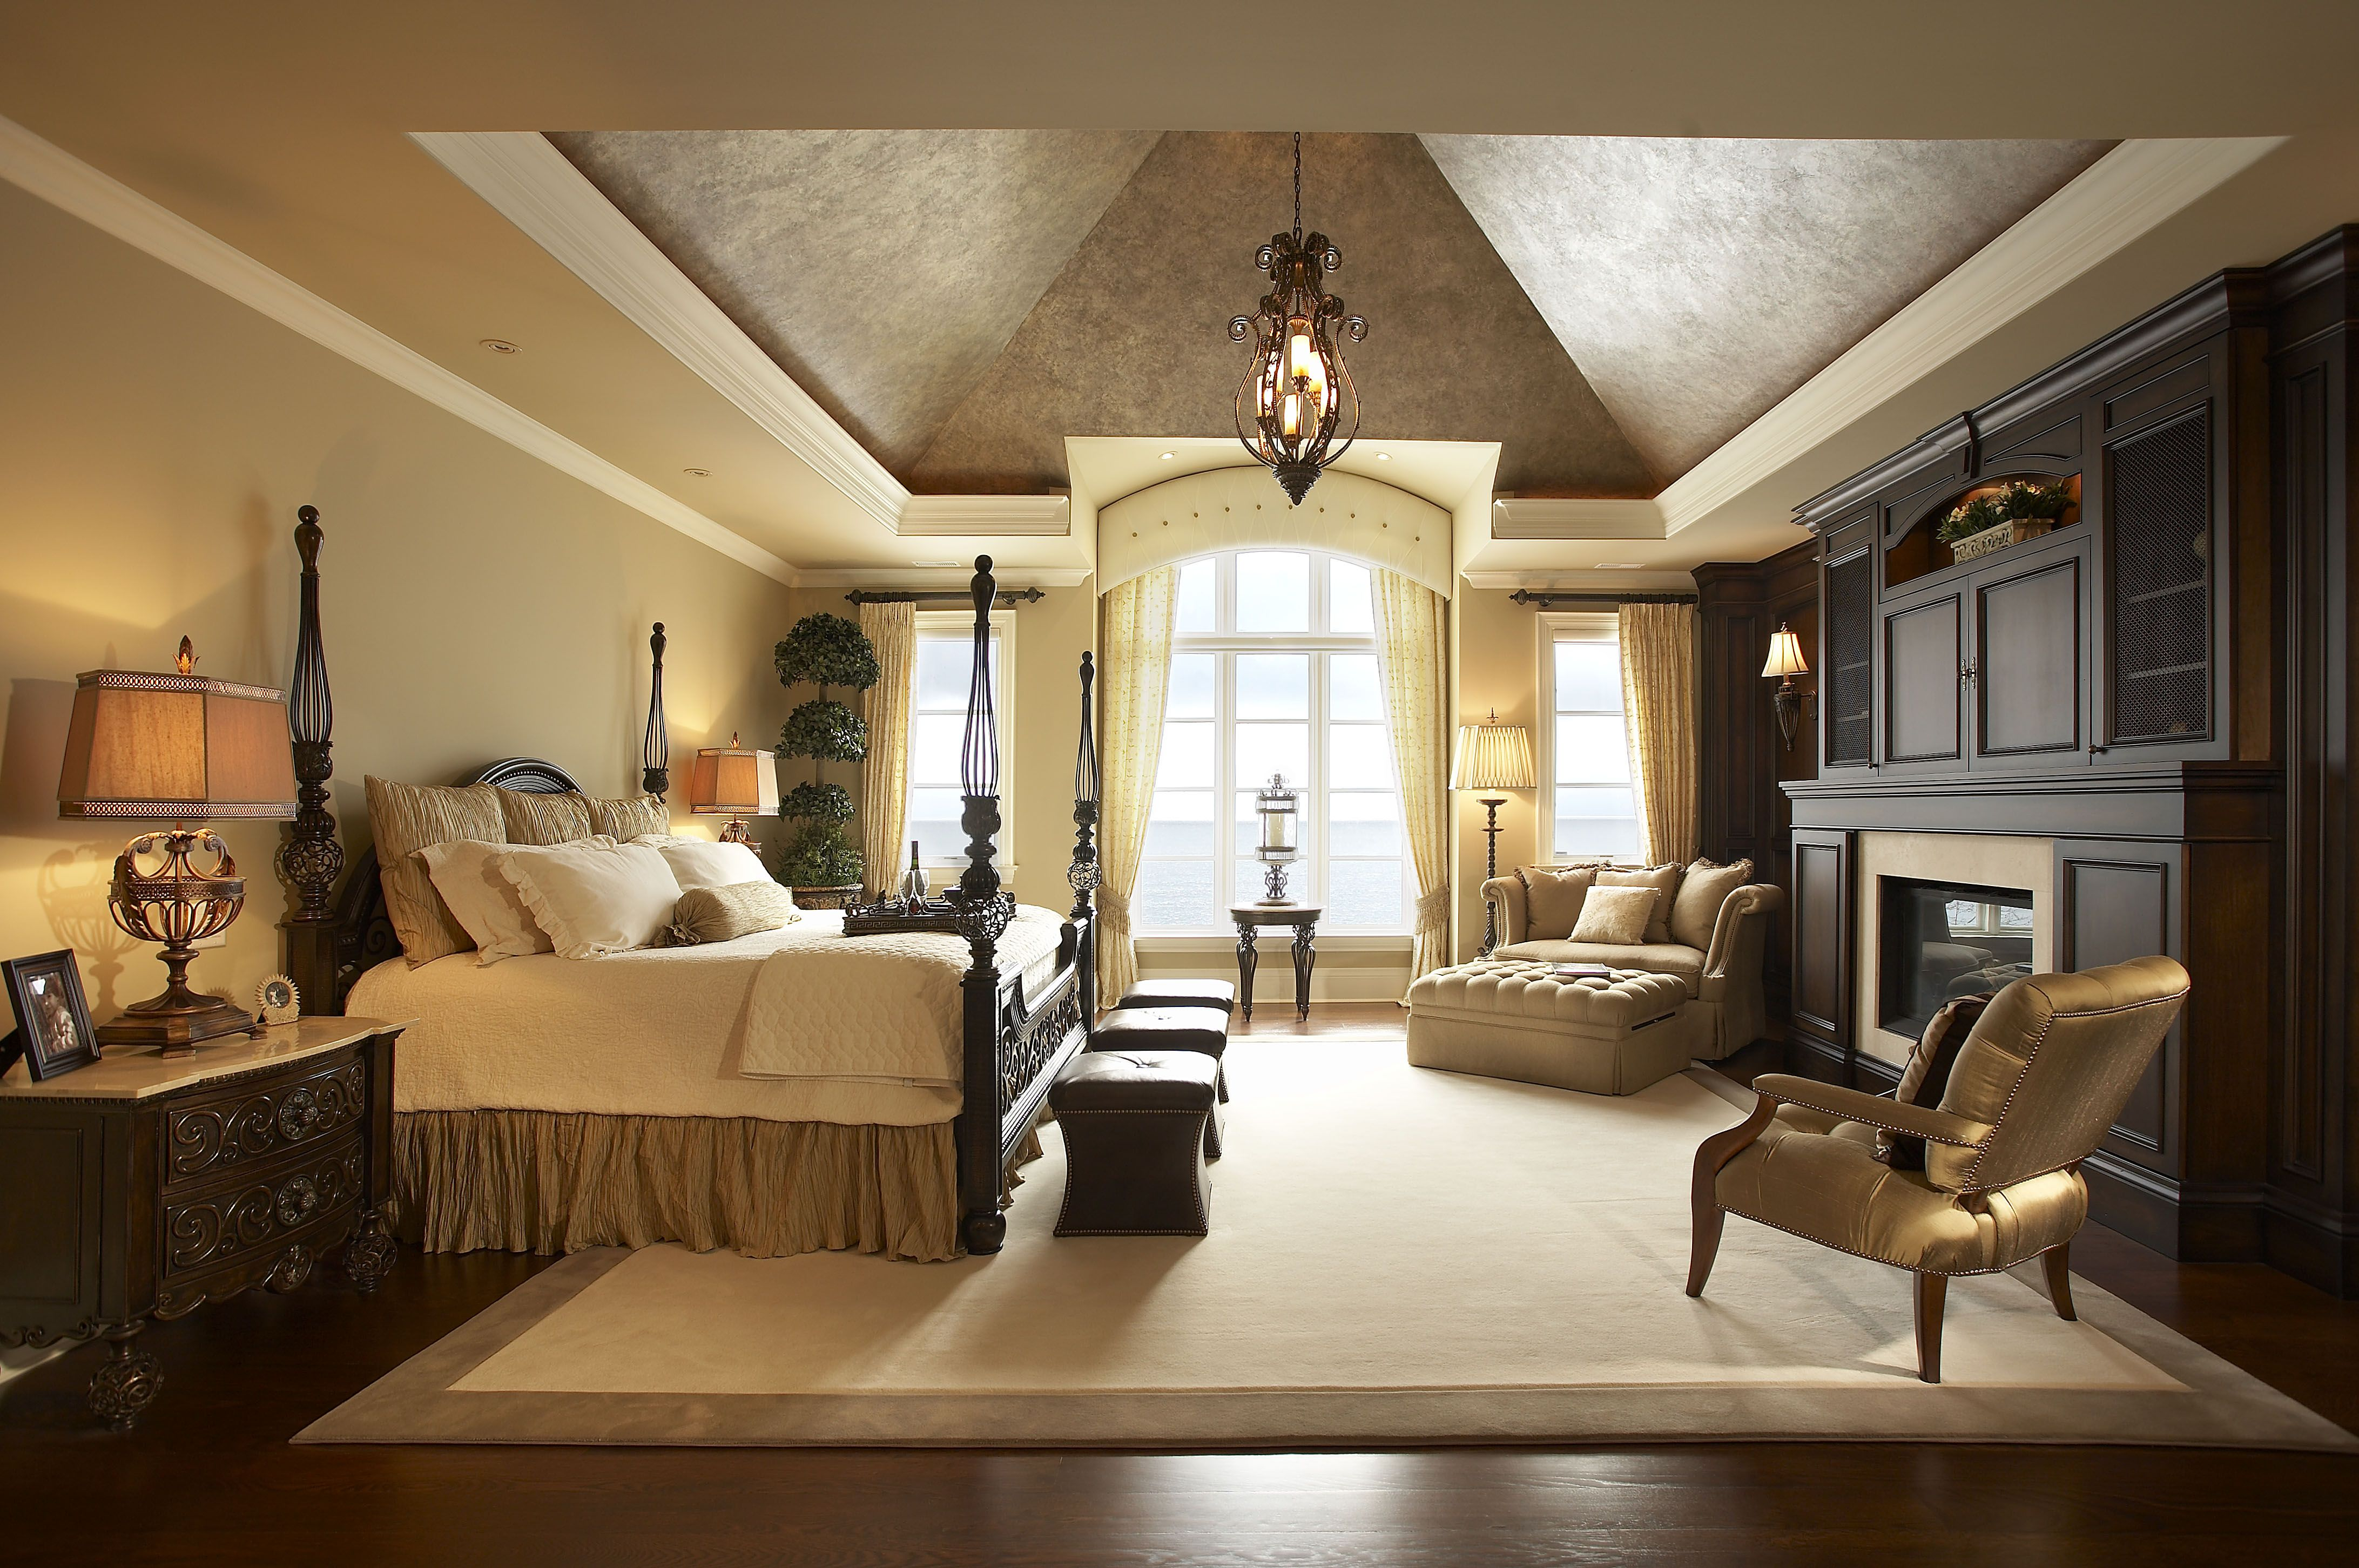 A Traditional Style Master Bedroom By Parkyn Design Www Parkyndesign Com Bedroom With Sitting Area Bedroom Design Traditional Bedroom Traditional bedroom ideas photos